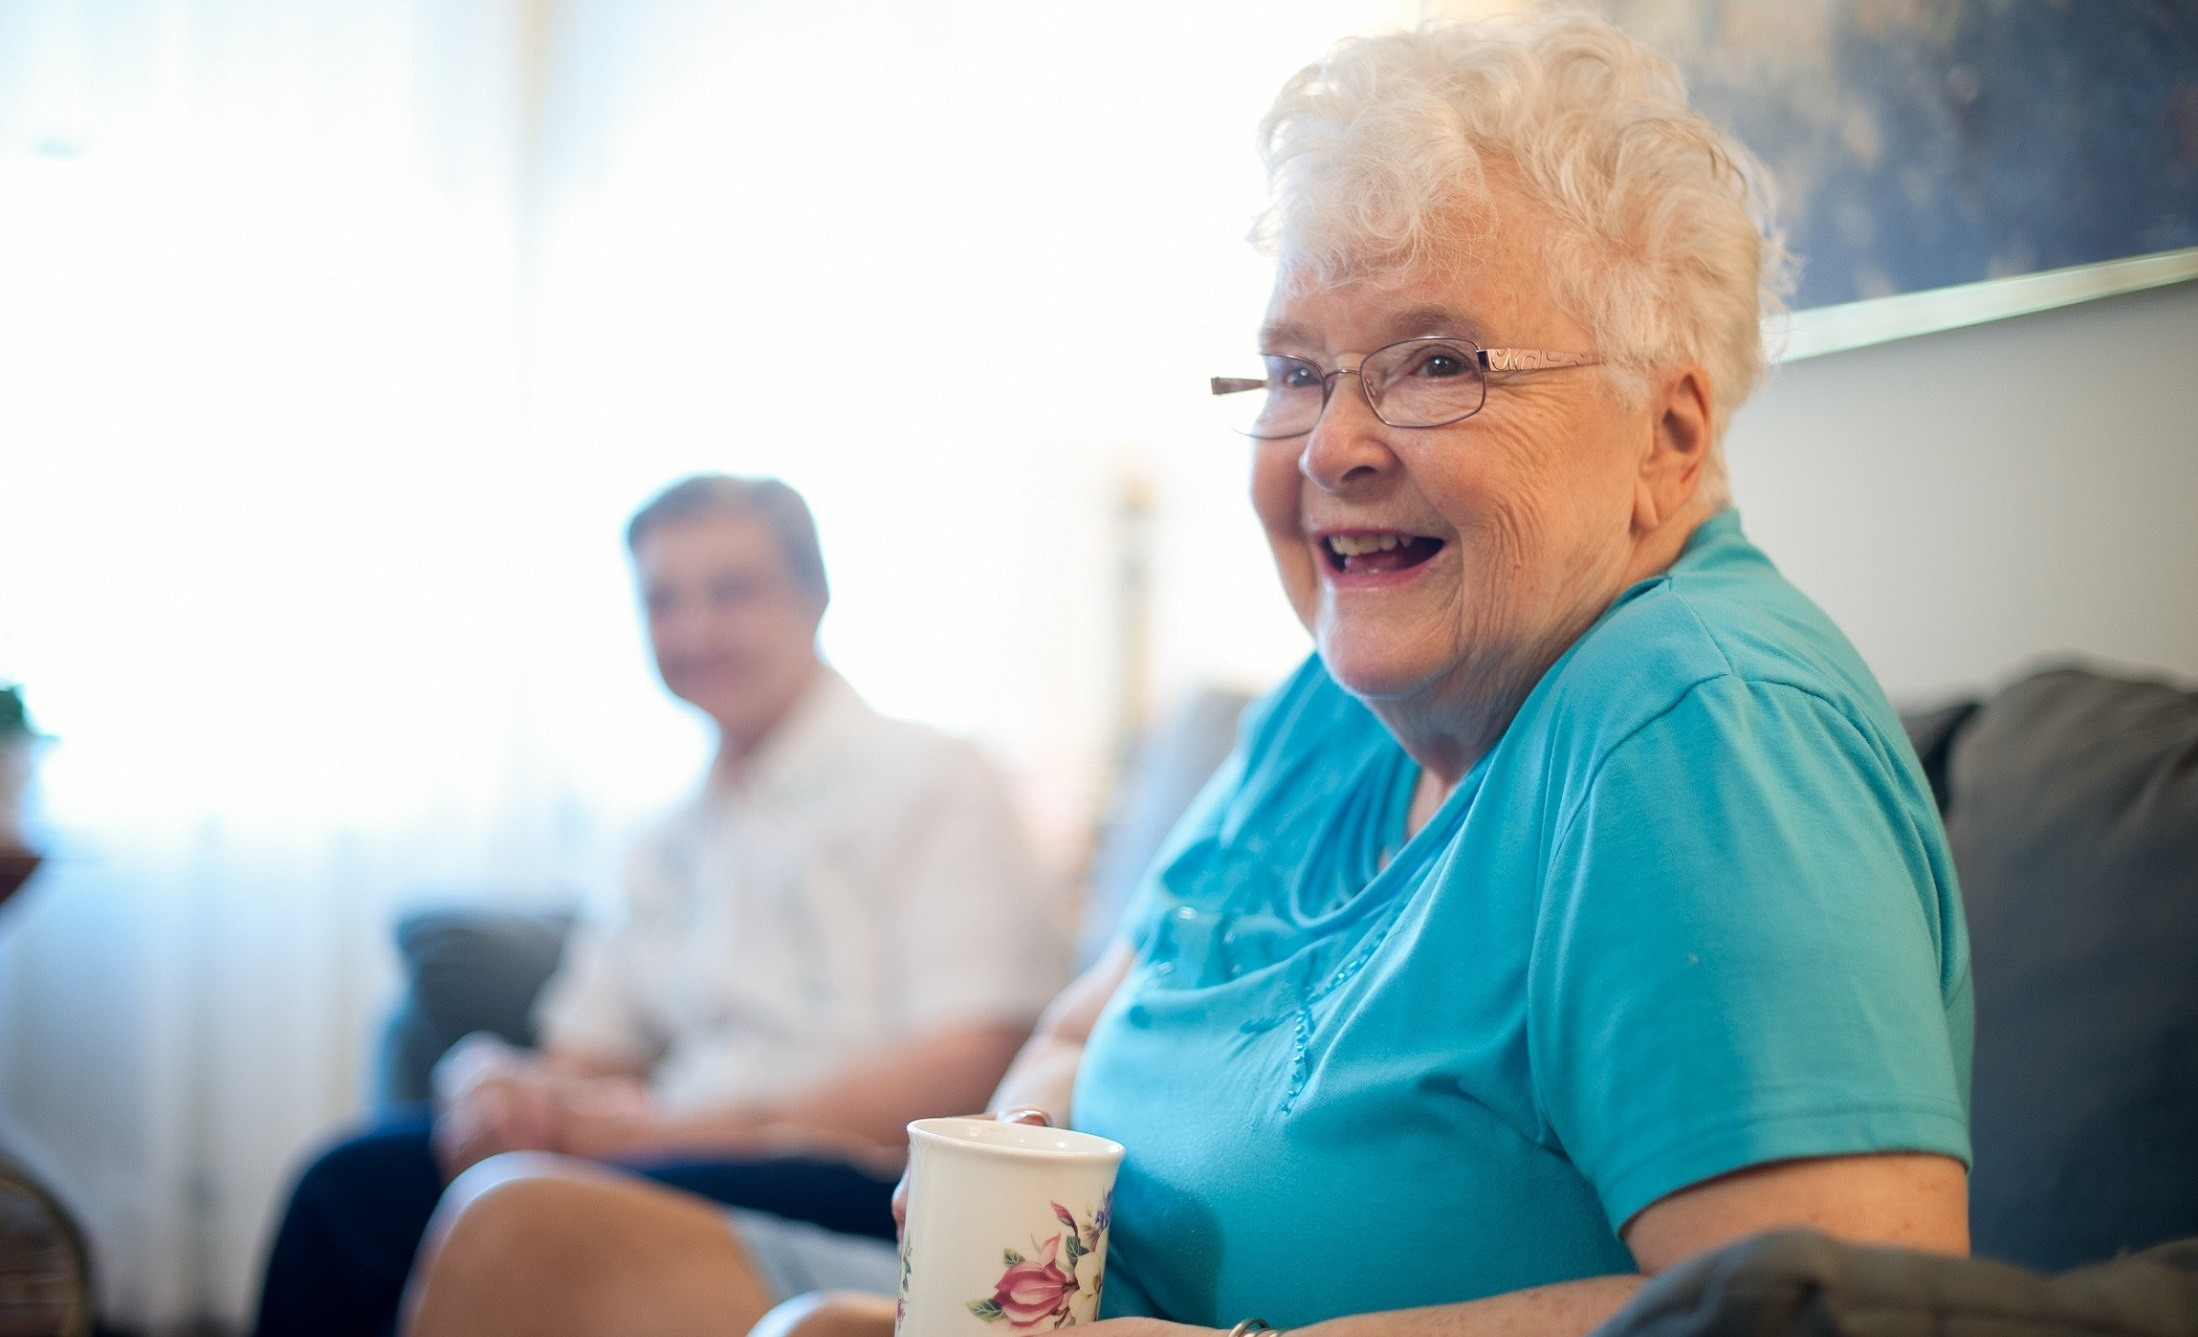 What are care suites? Learn about this unique community living model.